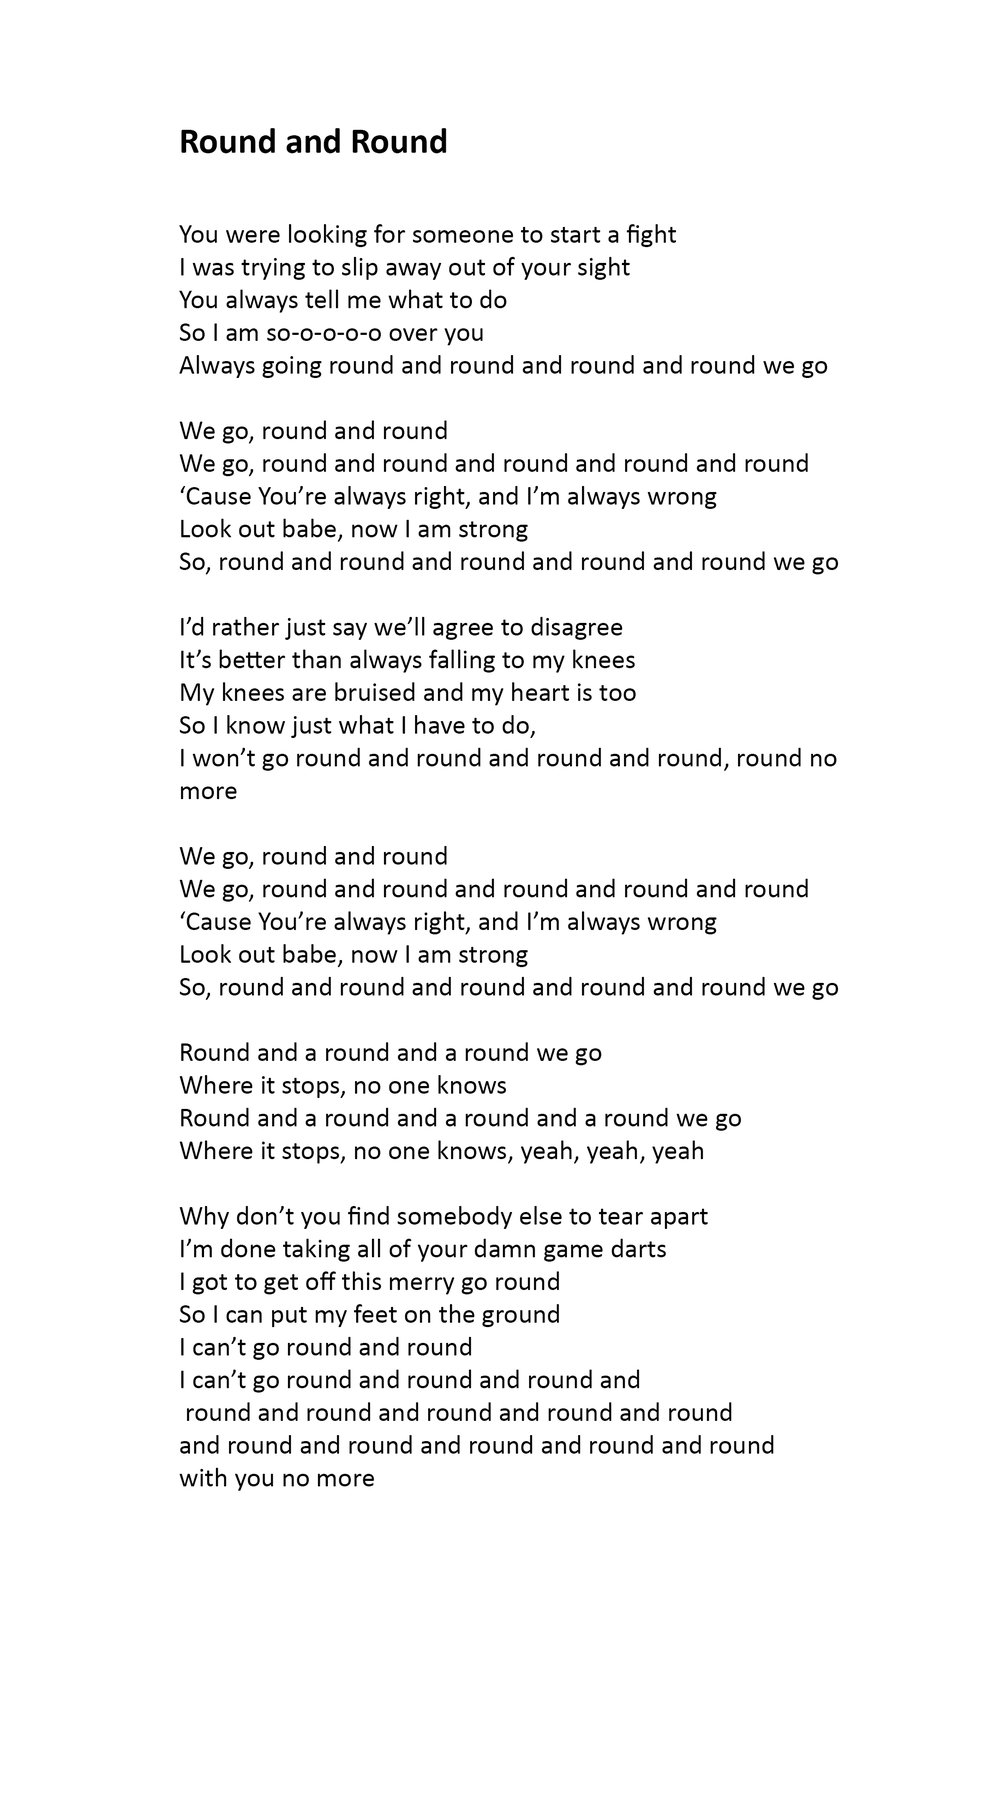 Round and Round Lyrics.jpg